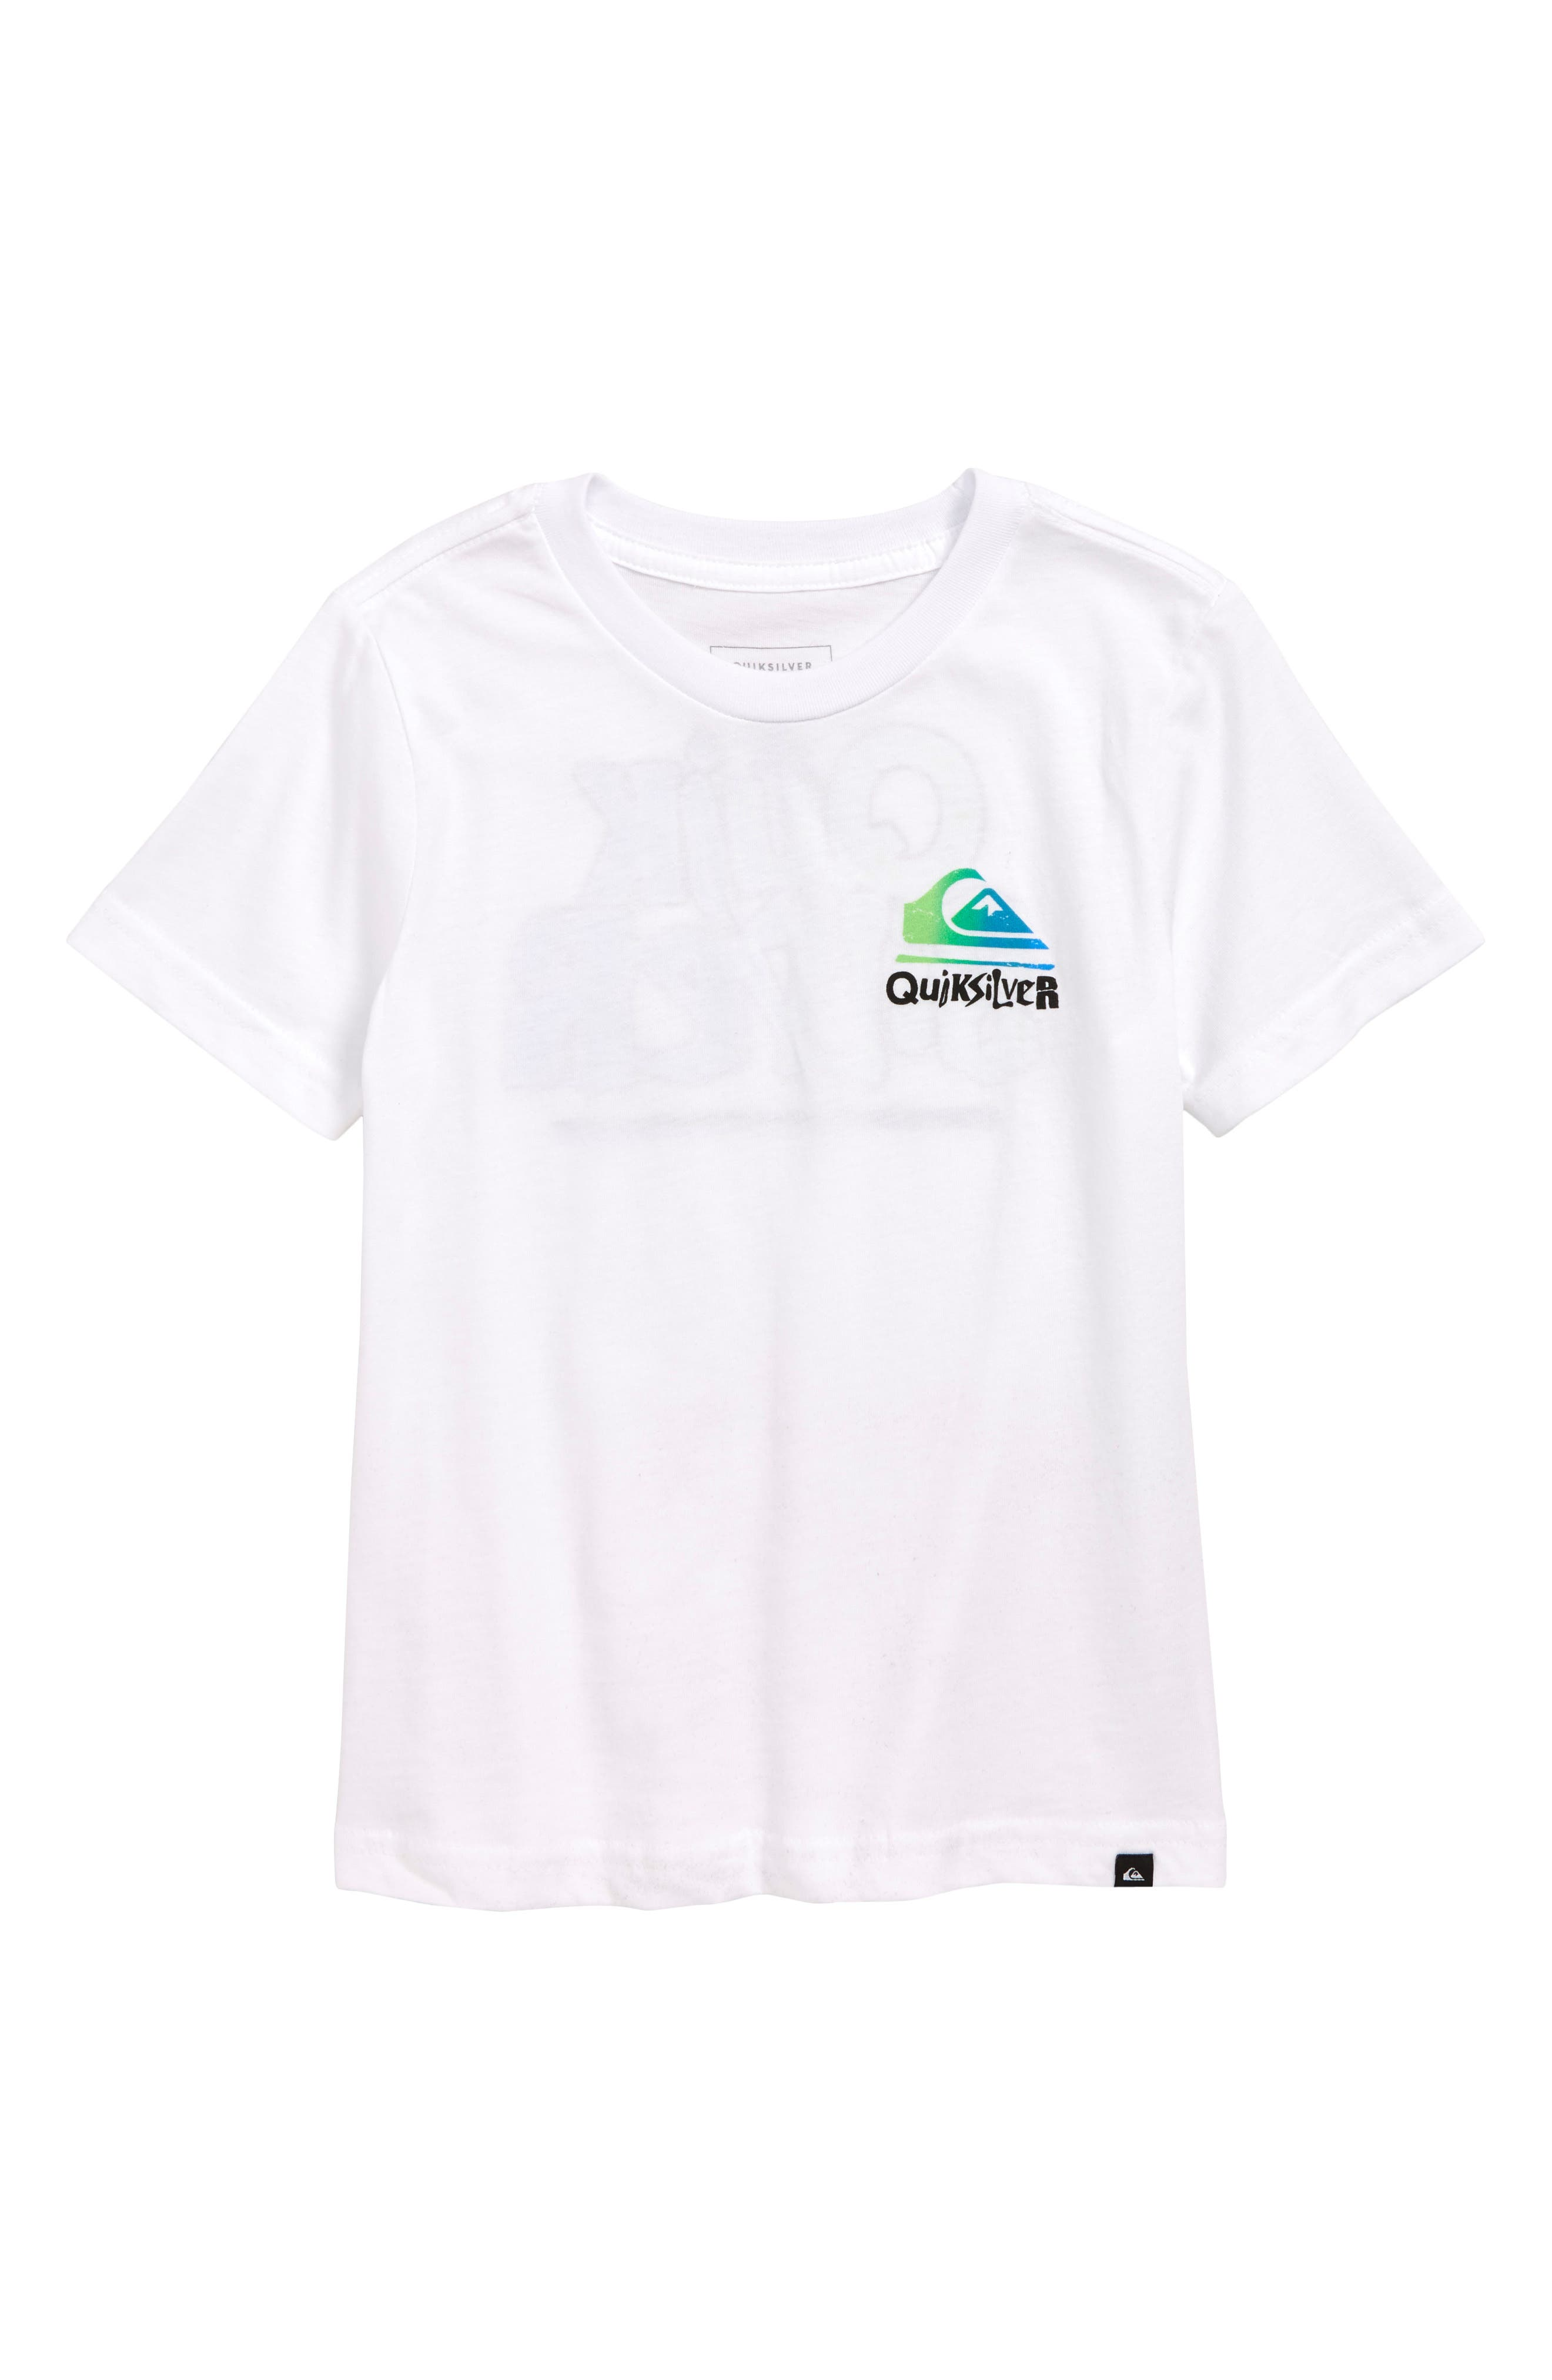 QUIKSILVER Rebel Yell Graphic T-Shirt, Main, color, WHITE